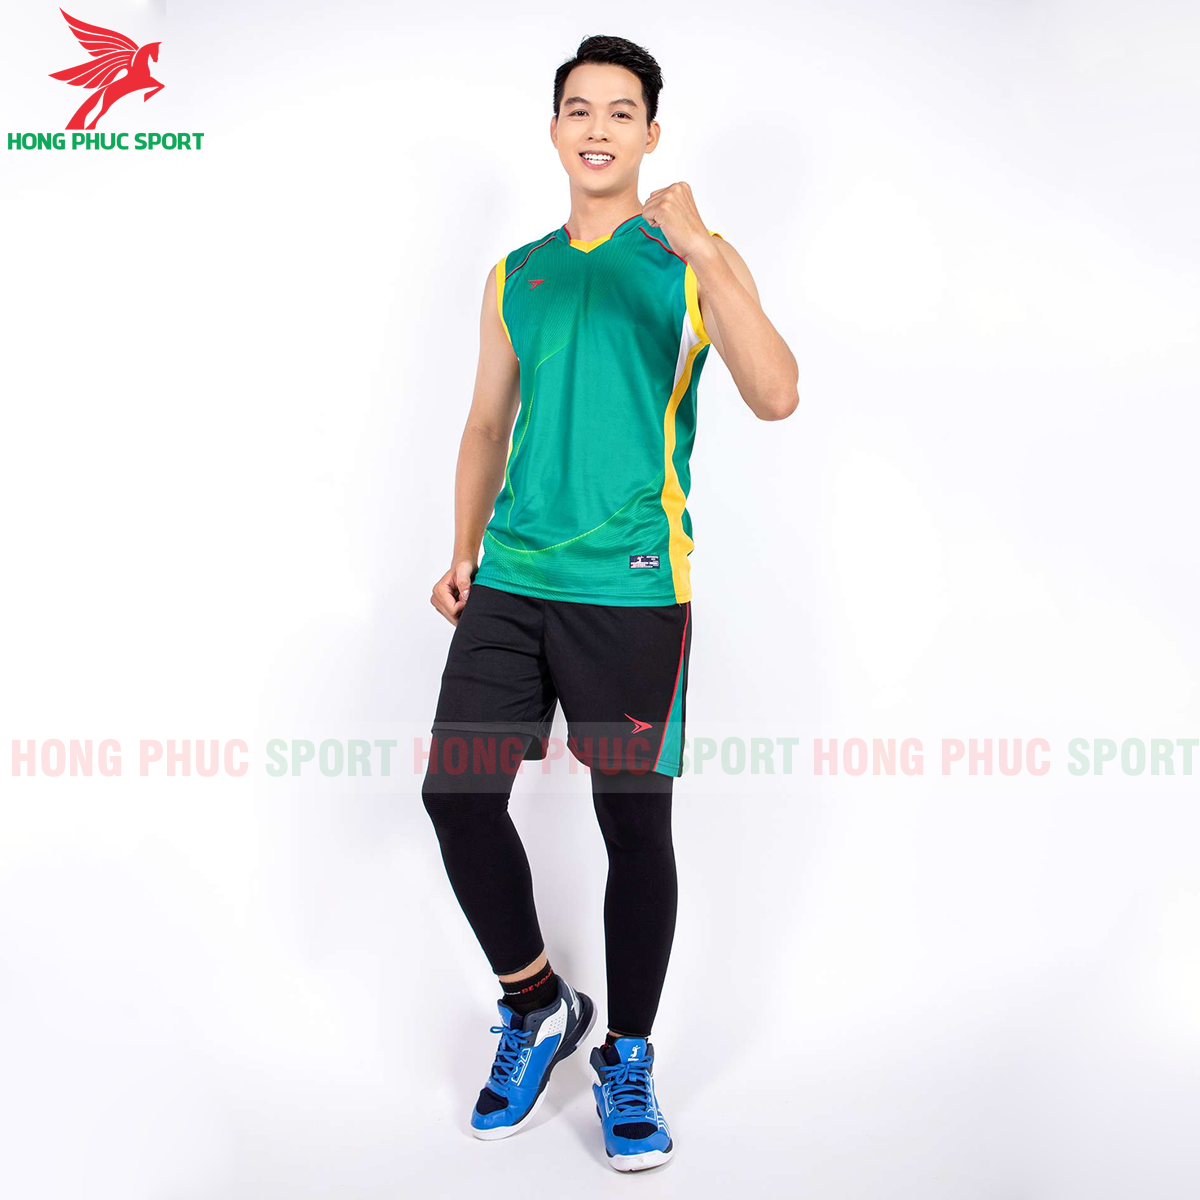 https://cdn.hongphucsport.com/unsafe/s4.shopbay.vn/files/285/ao-bong-chuyen-beyono-lighting-nam-mau-xanh-la-2-5f8171b069f74.png